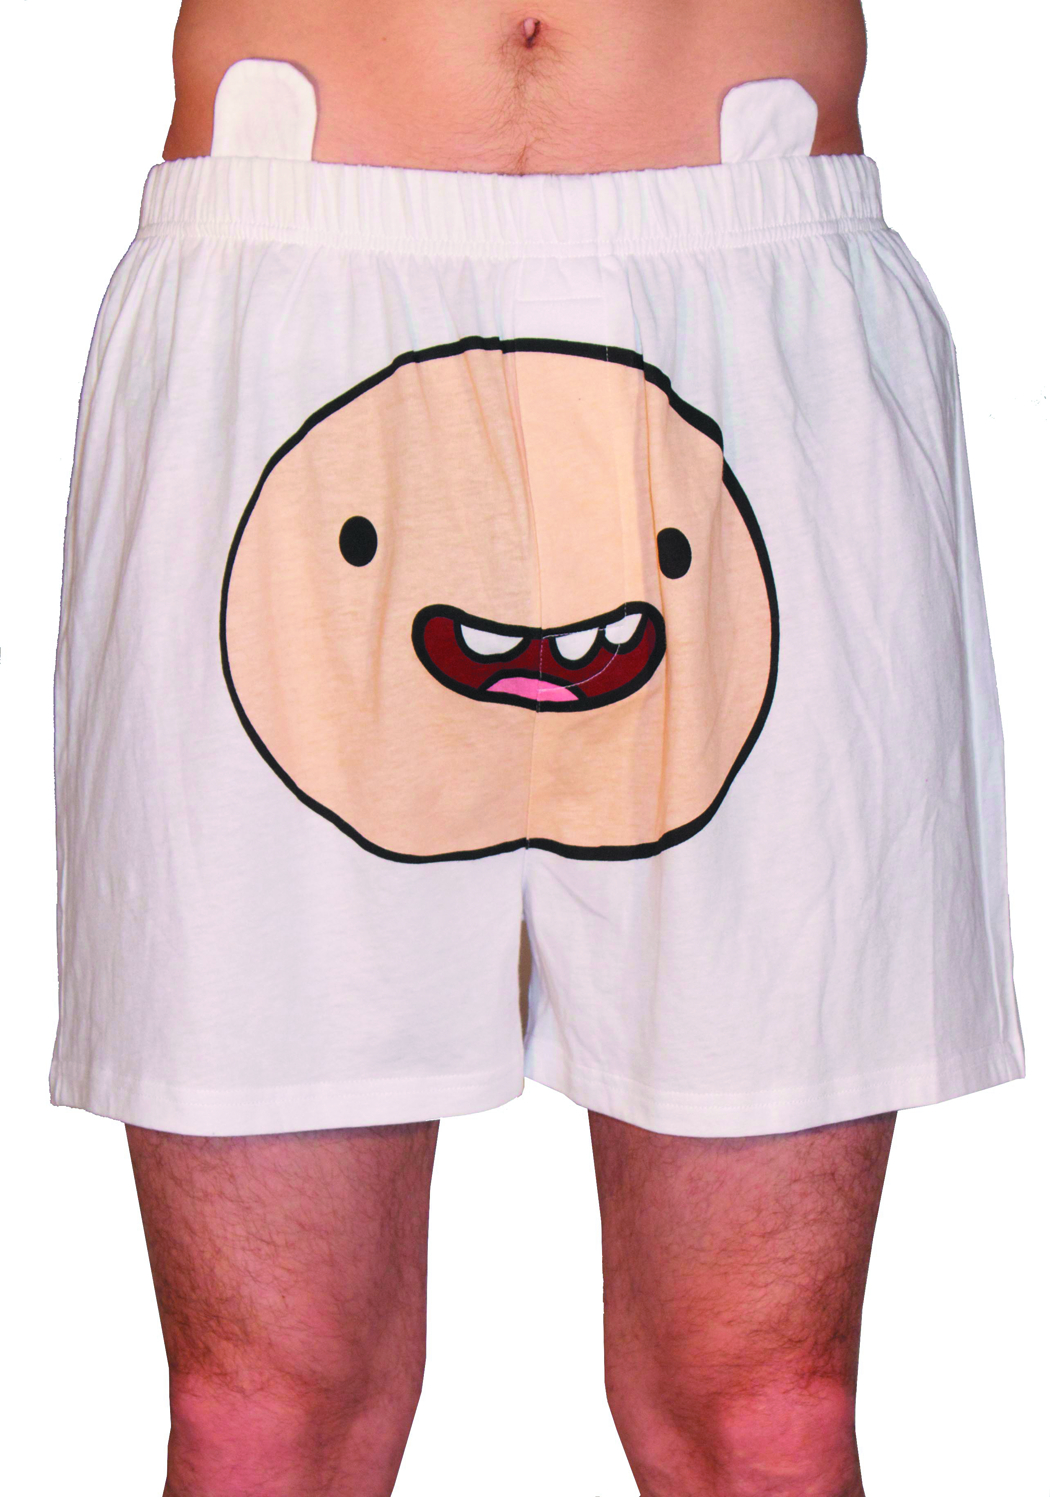 ADV TIME FINN FACE MENS BOXER SHORTS LG